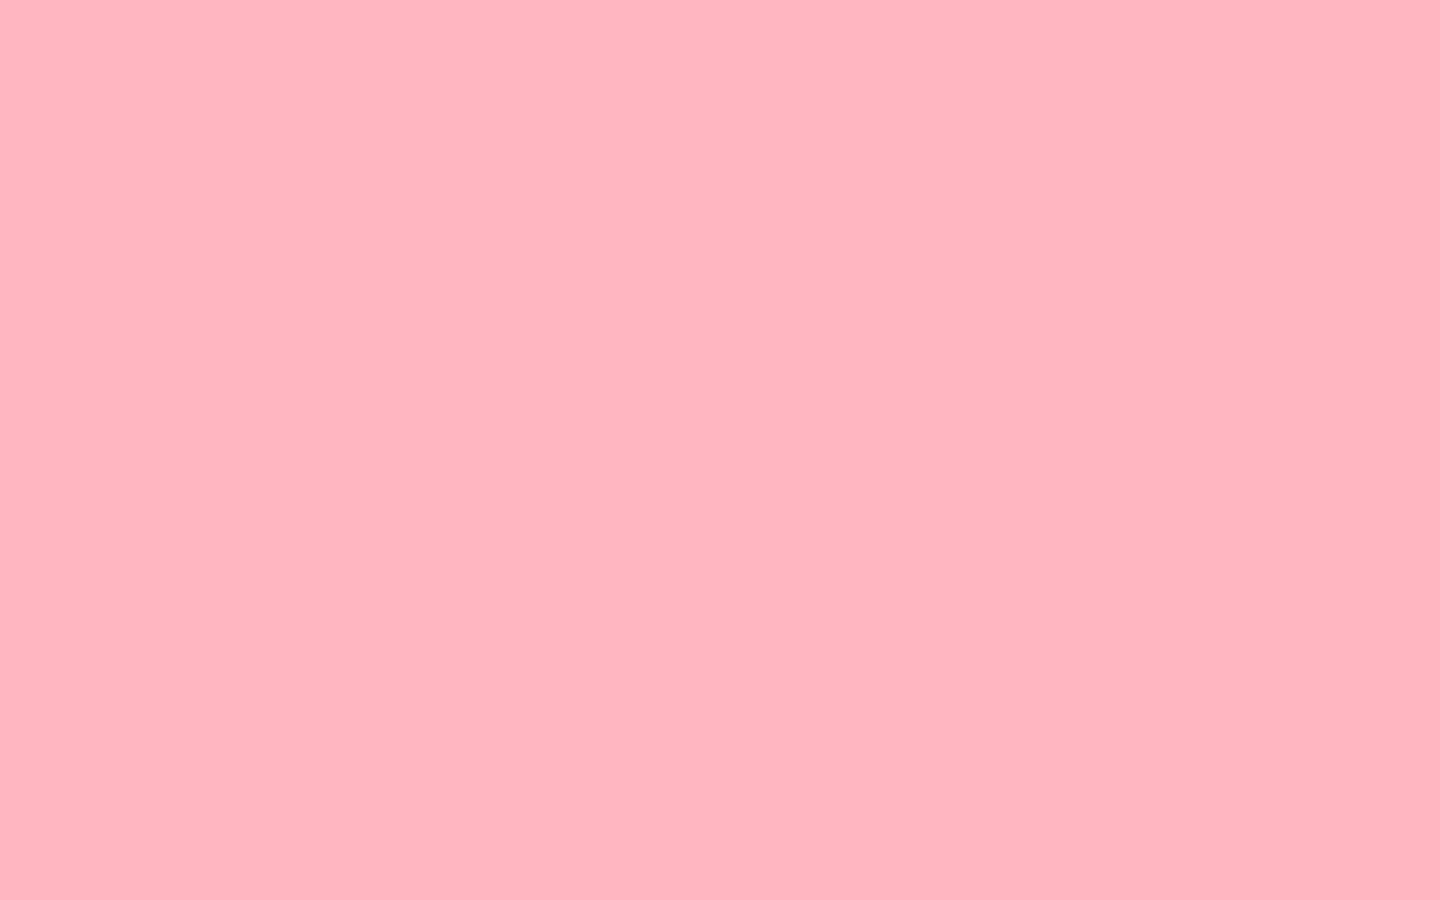 Pink solid color background view and download the below background 1440x900